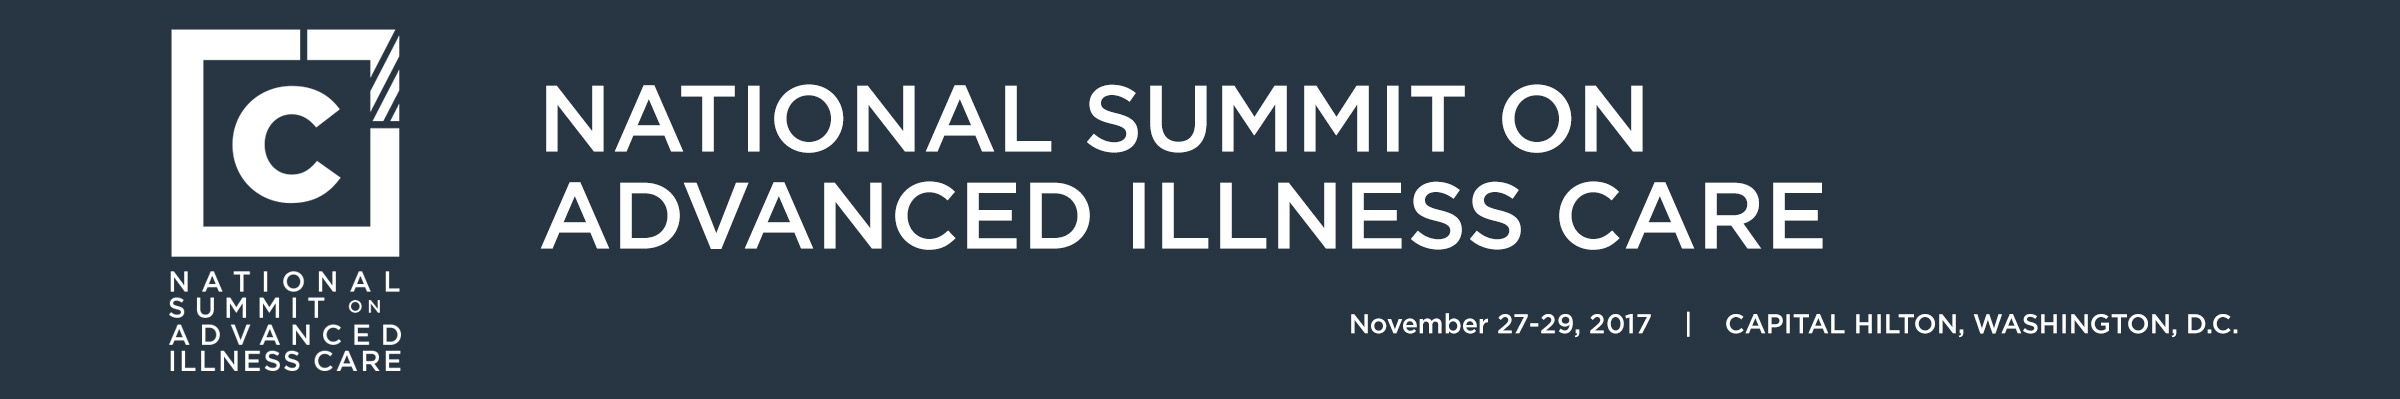 2017 National Summit on Advanced Illness Care